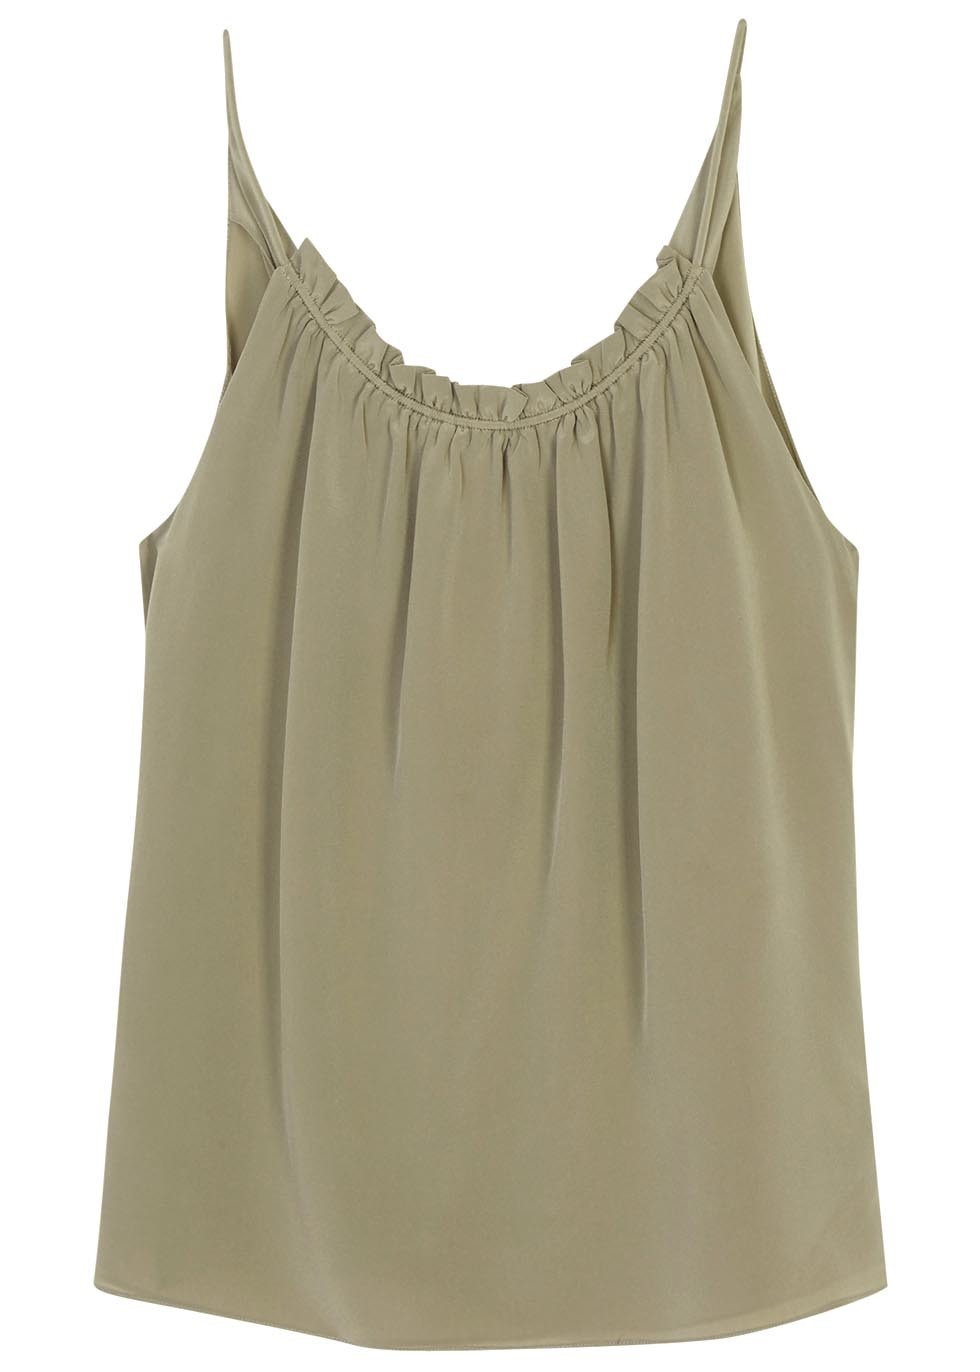 Olive Draped Silk Tank - pattern: plain; sleeve style: sleeveless; style: camisole; predominant colour: khaki; occasions: casual; length: standard; neckline: scoop; fibres: silk - 100%; fit: body skimming; sleeve length: sleeveless; texture group: silky - light; pattern type: fabric; season: s/s 2016